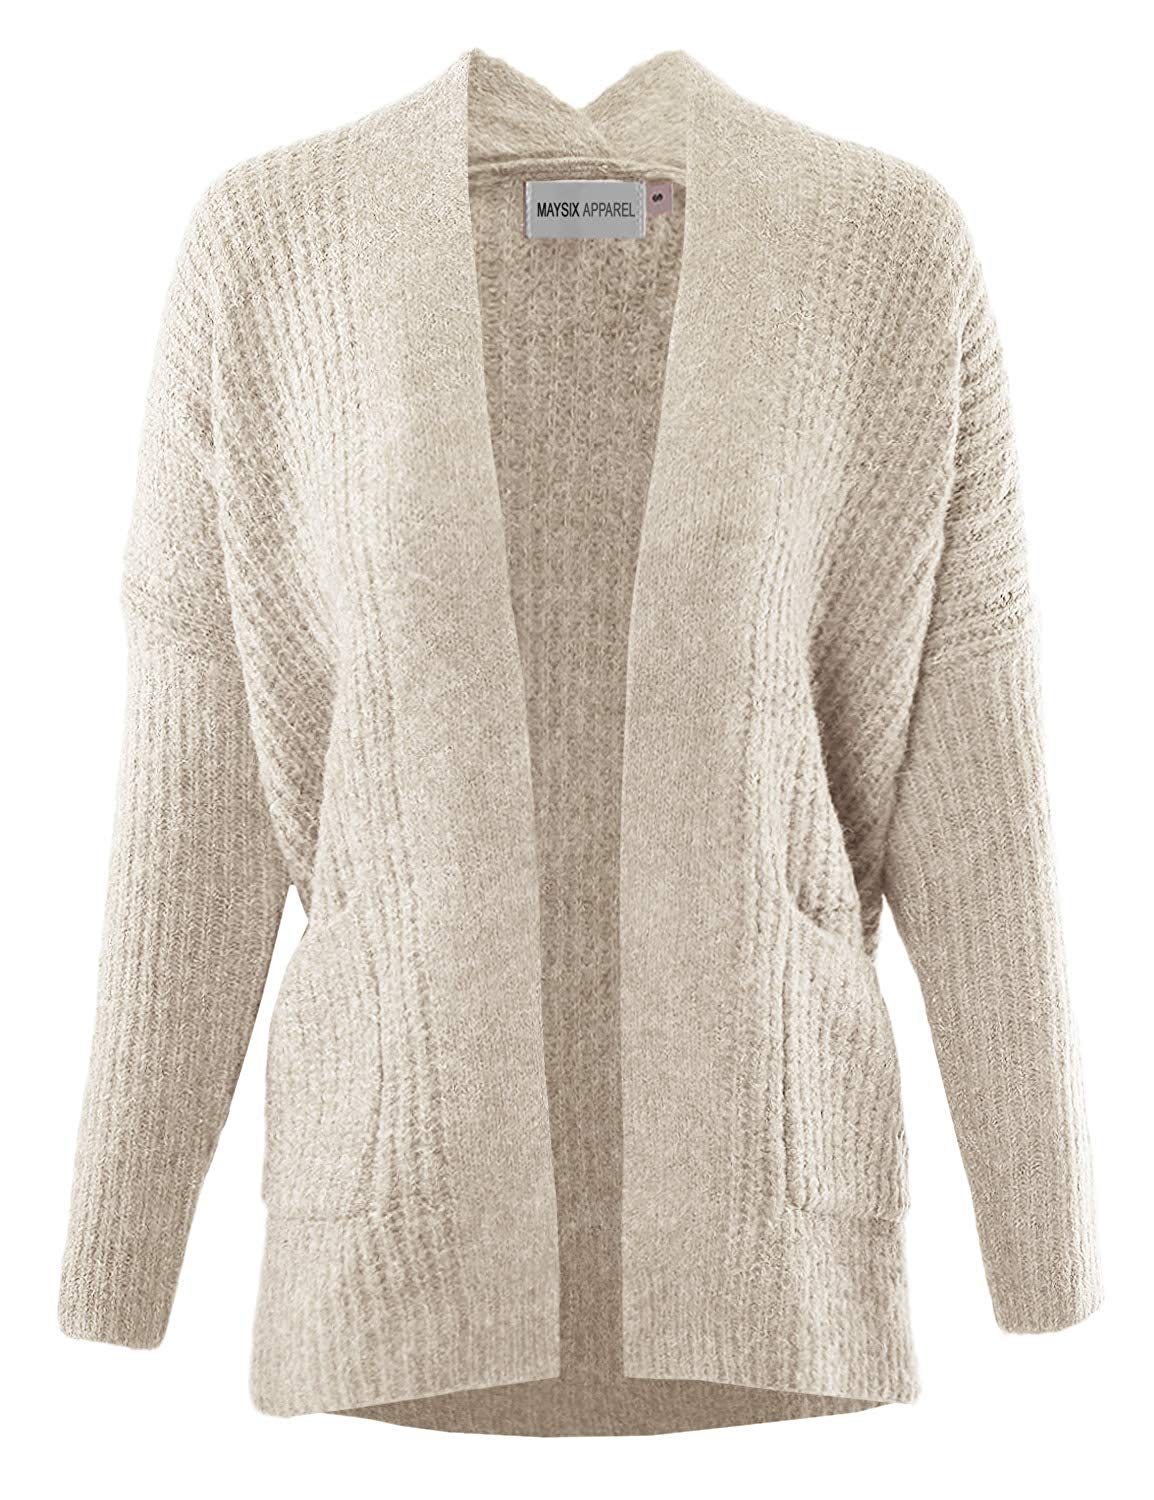 MAYSIX APPAREL Women Casual Cotton Cable Knit Open Sweater Long Sleeve Chunky Cardigan W/Pocket